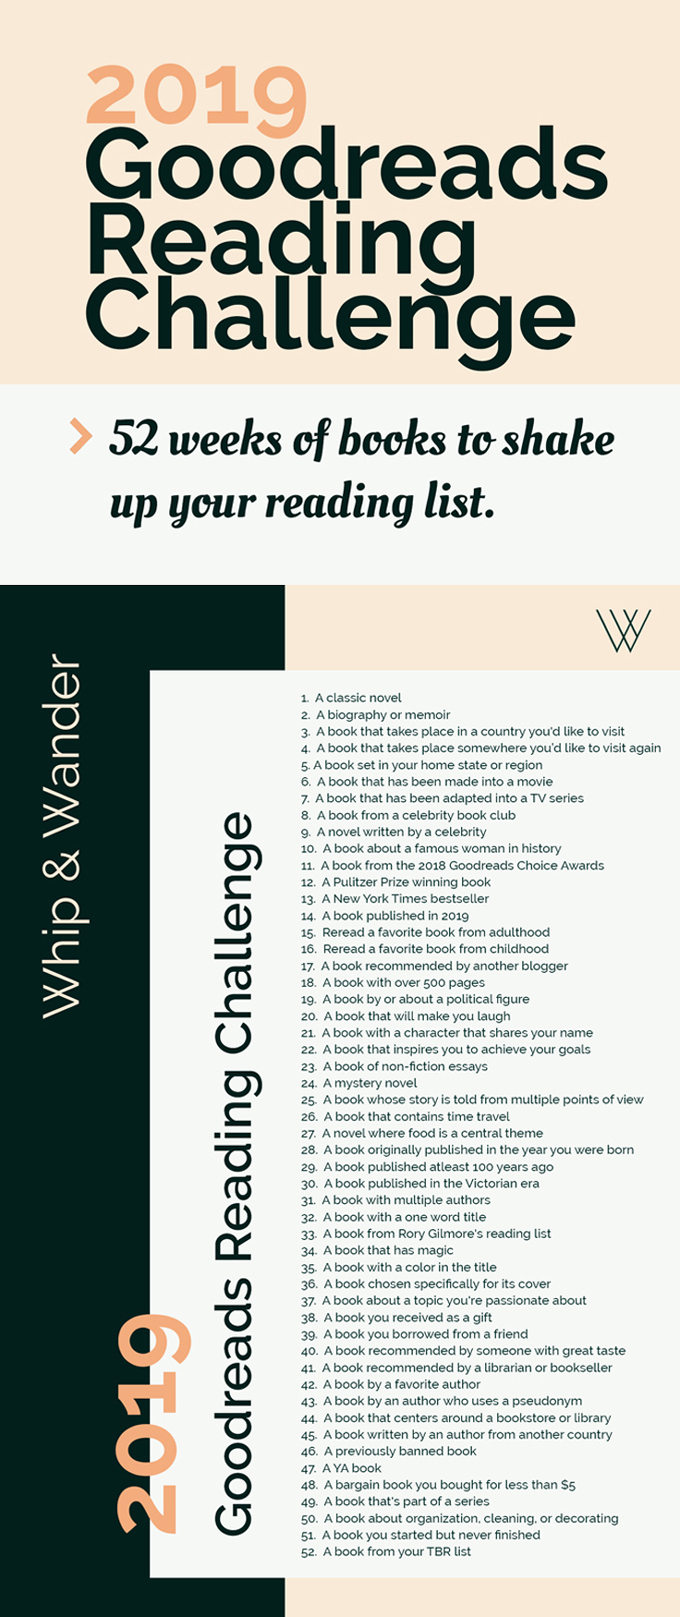 2019 Goodreads Reading Challenge